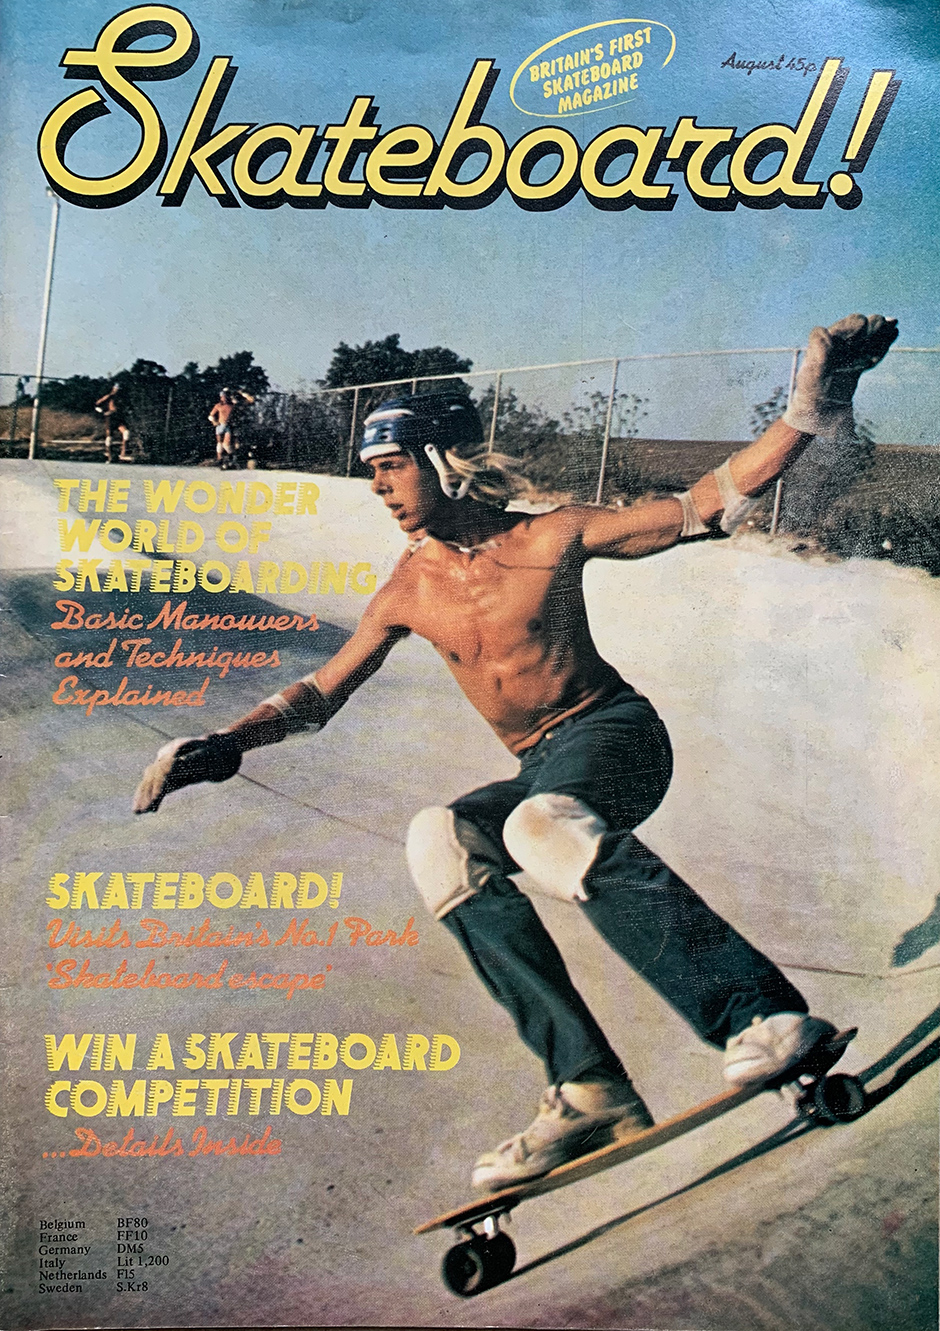 Issue one of Skateboard! magazine launched in 1977